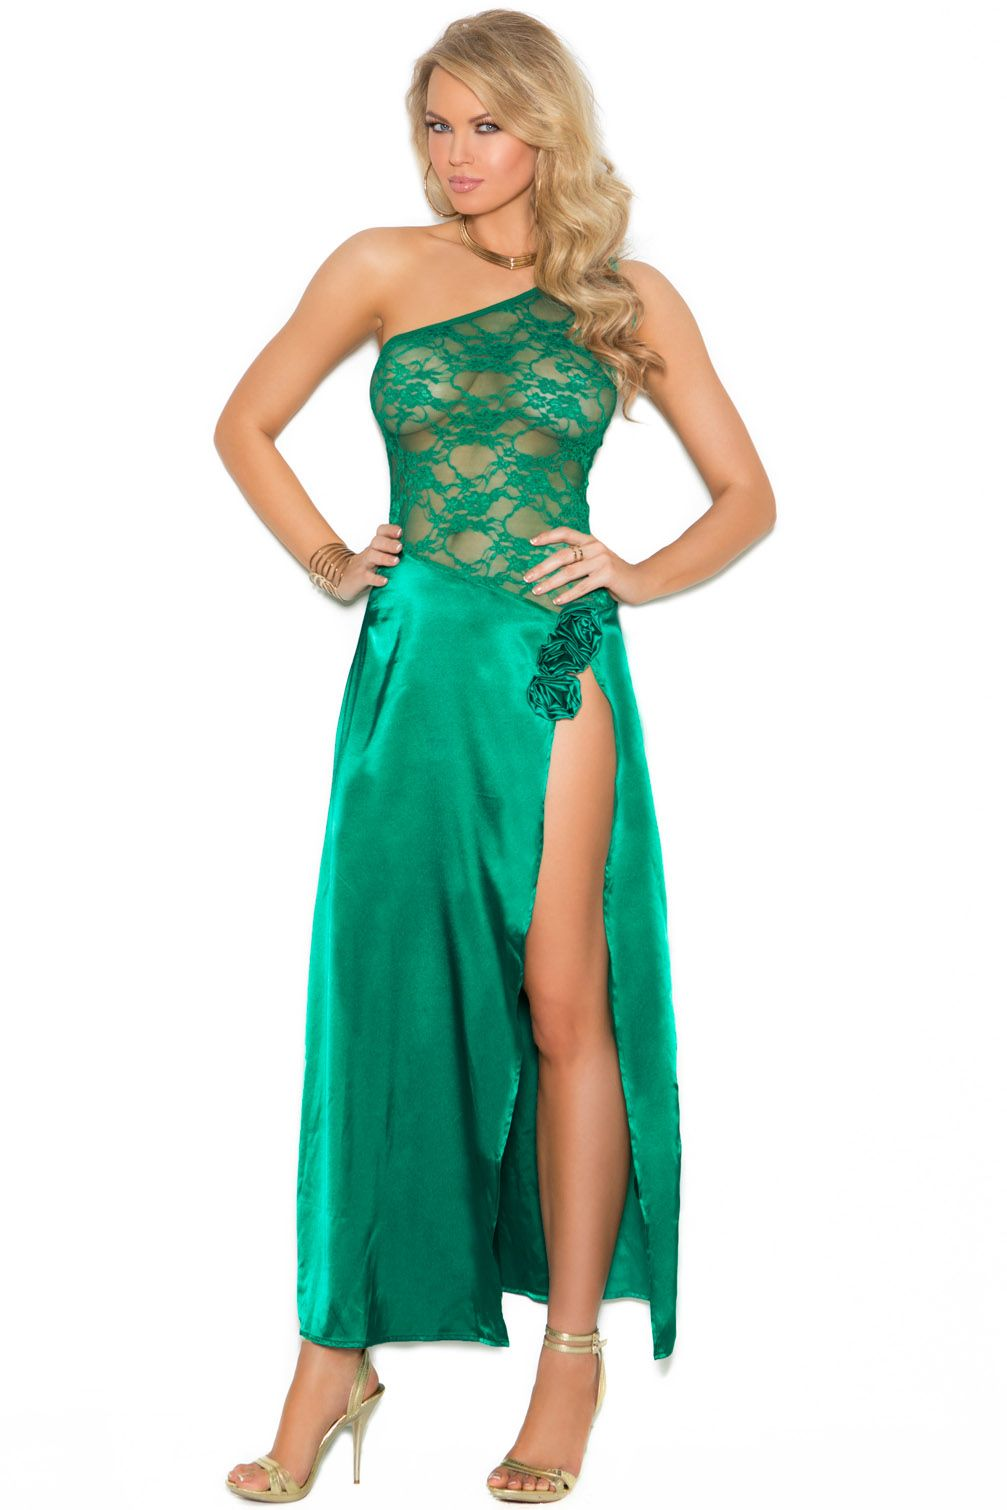 Shop sexy holiday lingerie like this Envious Love Gown at Lingerie ...